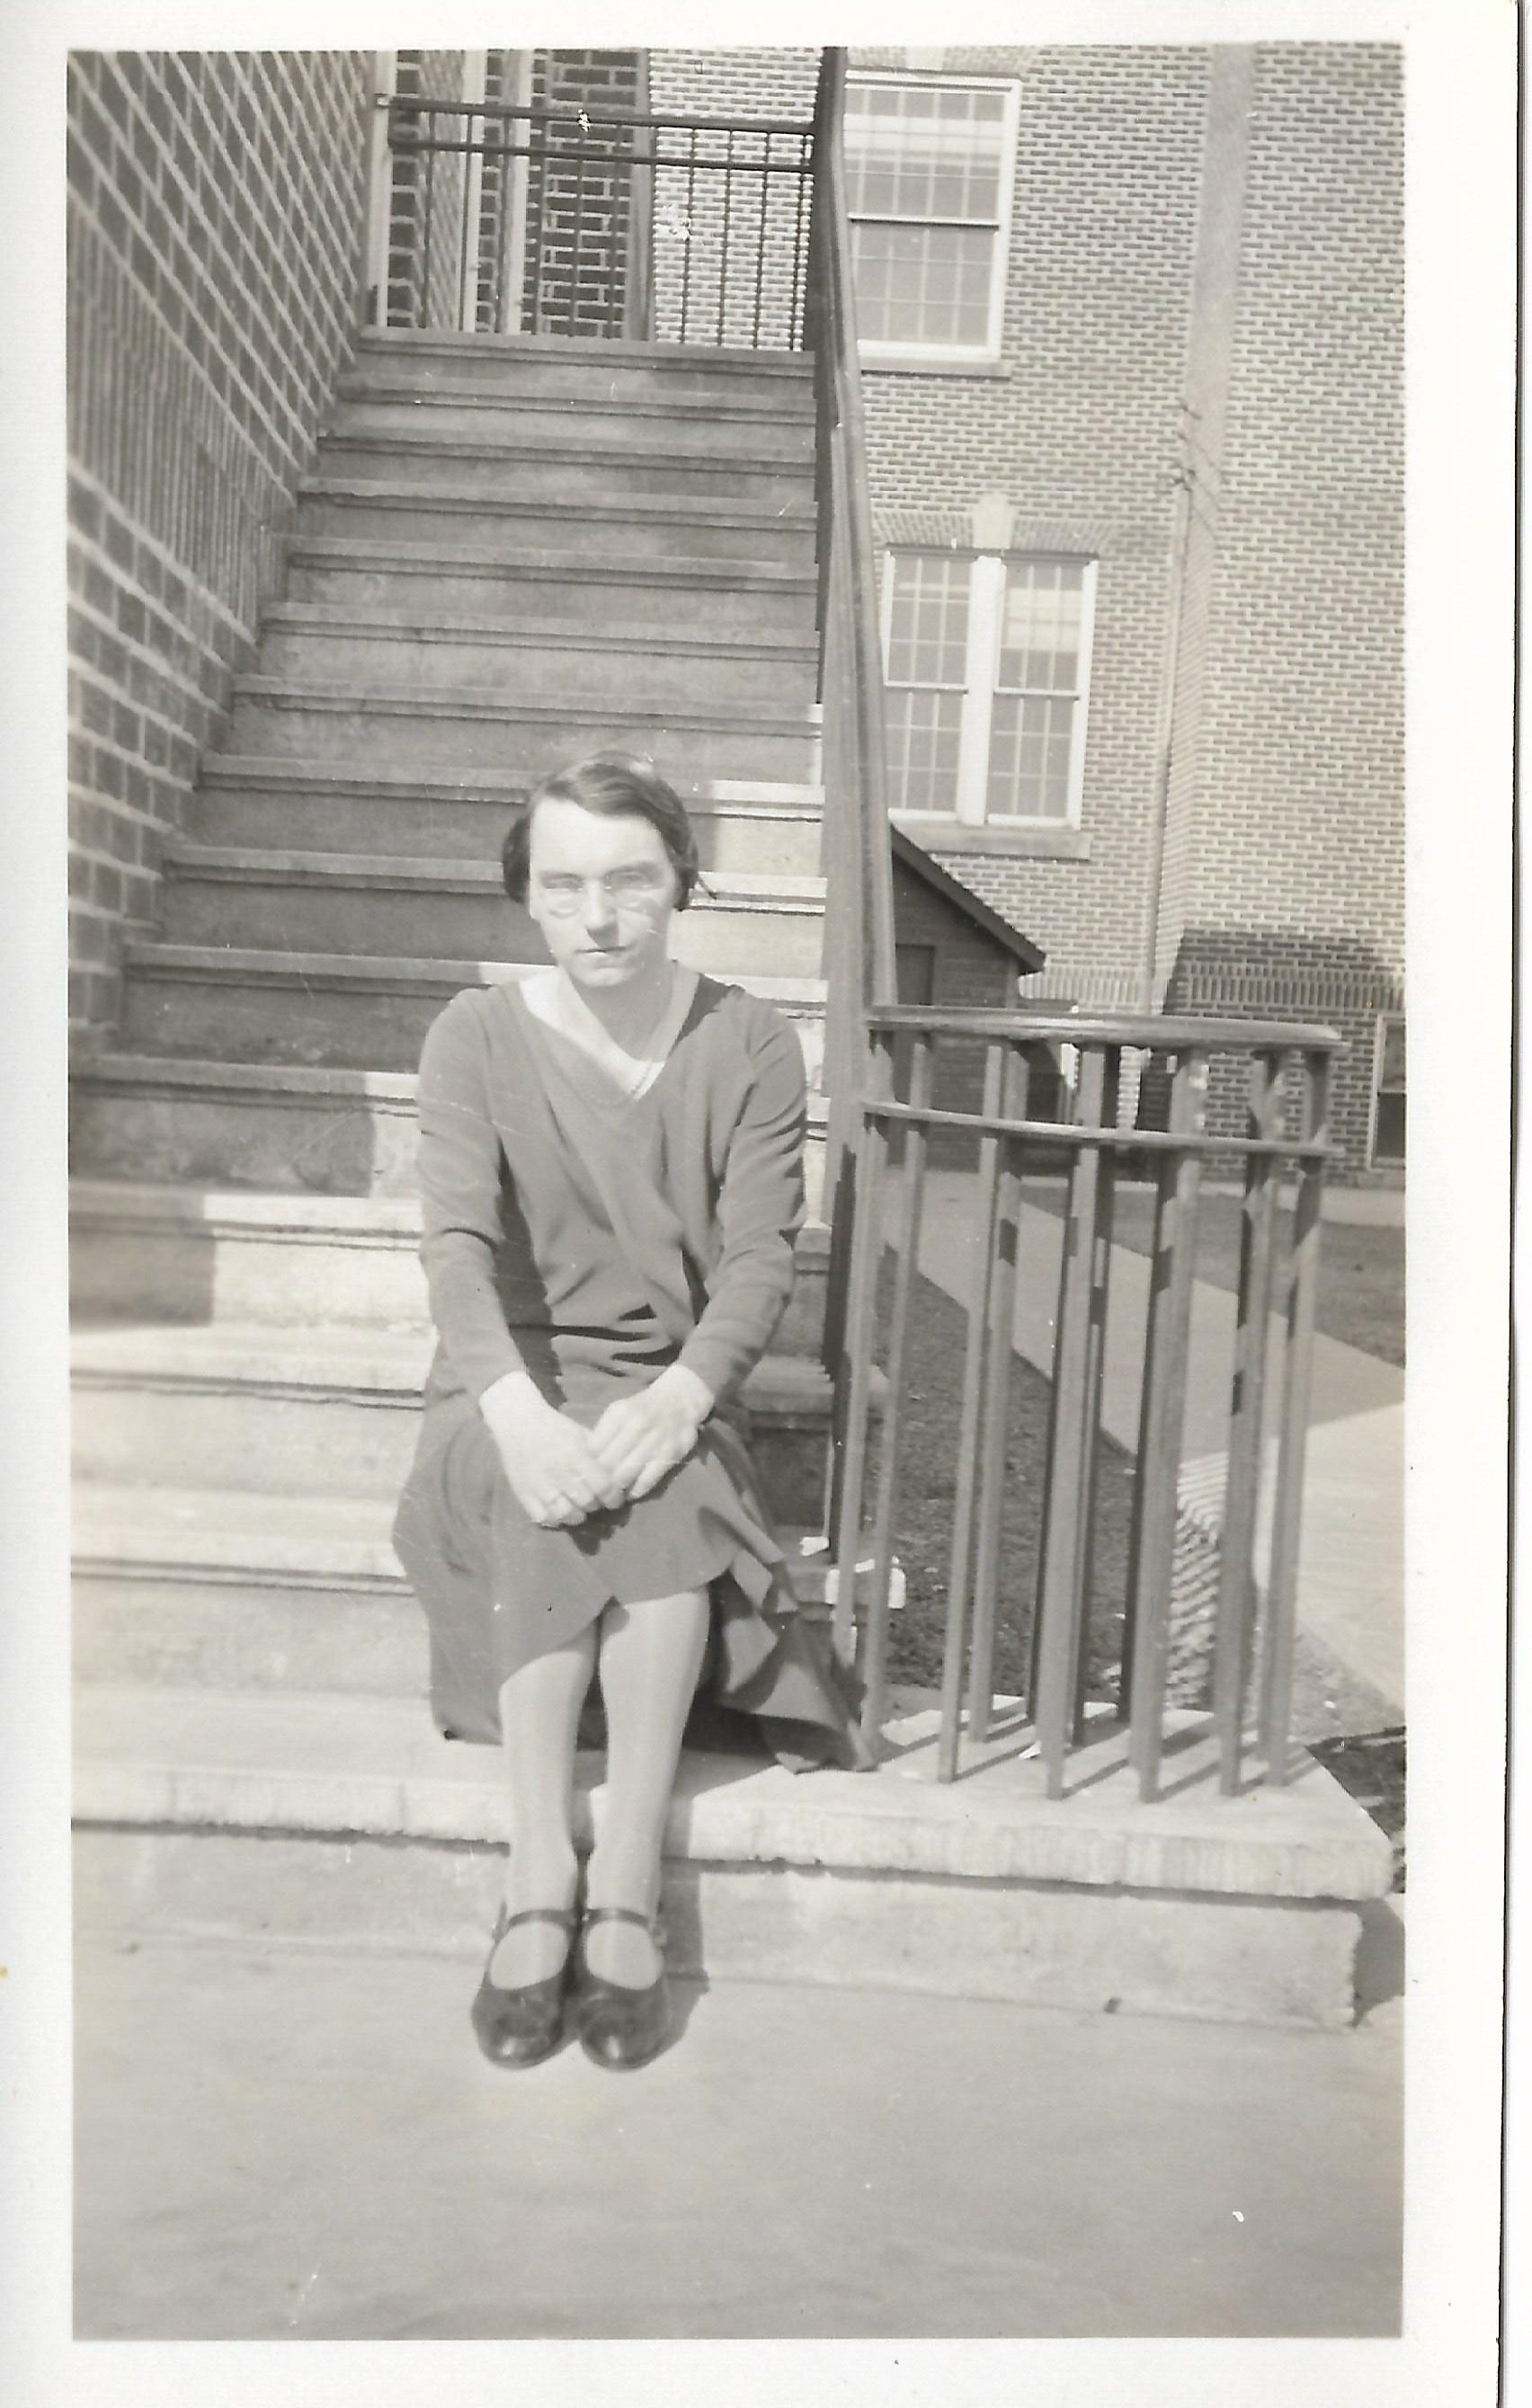 Ms. Riley, the latin teacher at Barrie Central Collegiate, sits outside the school on a staircase.